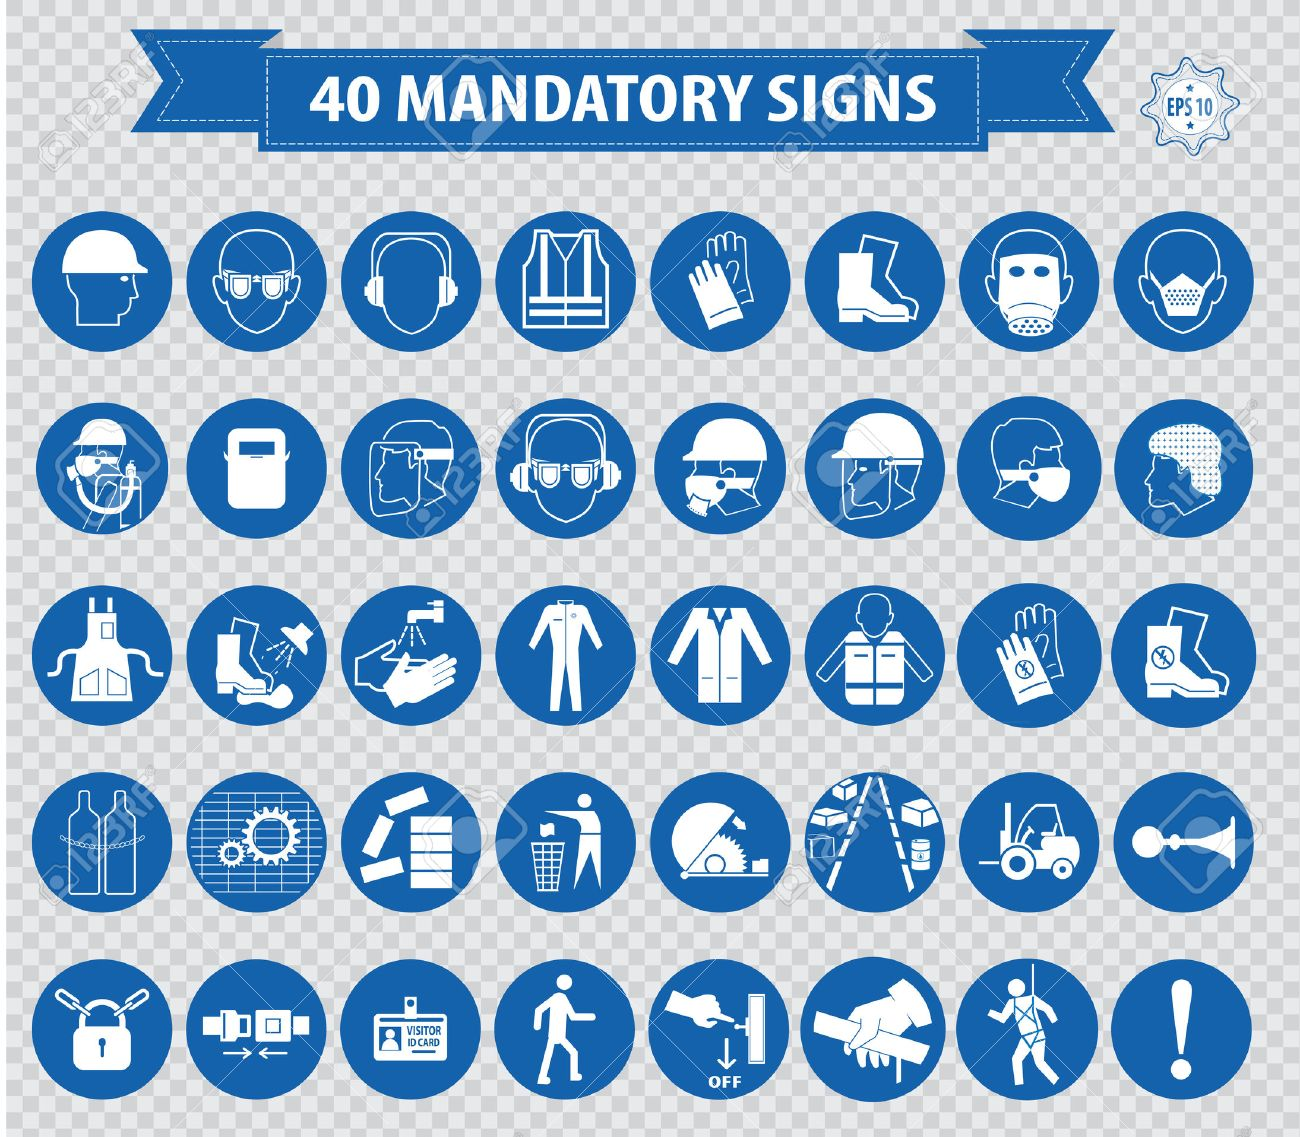 mandatory signs construction health safety sign used in industrial applications safety helmet gloves ear protection eye protection foot protection hairnet respirator mask antistatic apron - 40812079